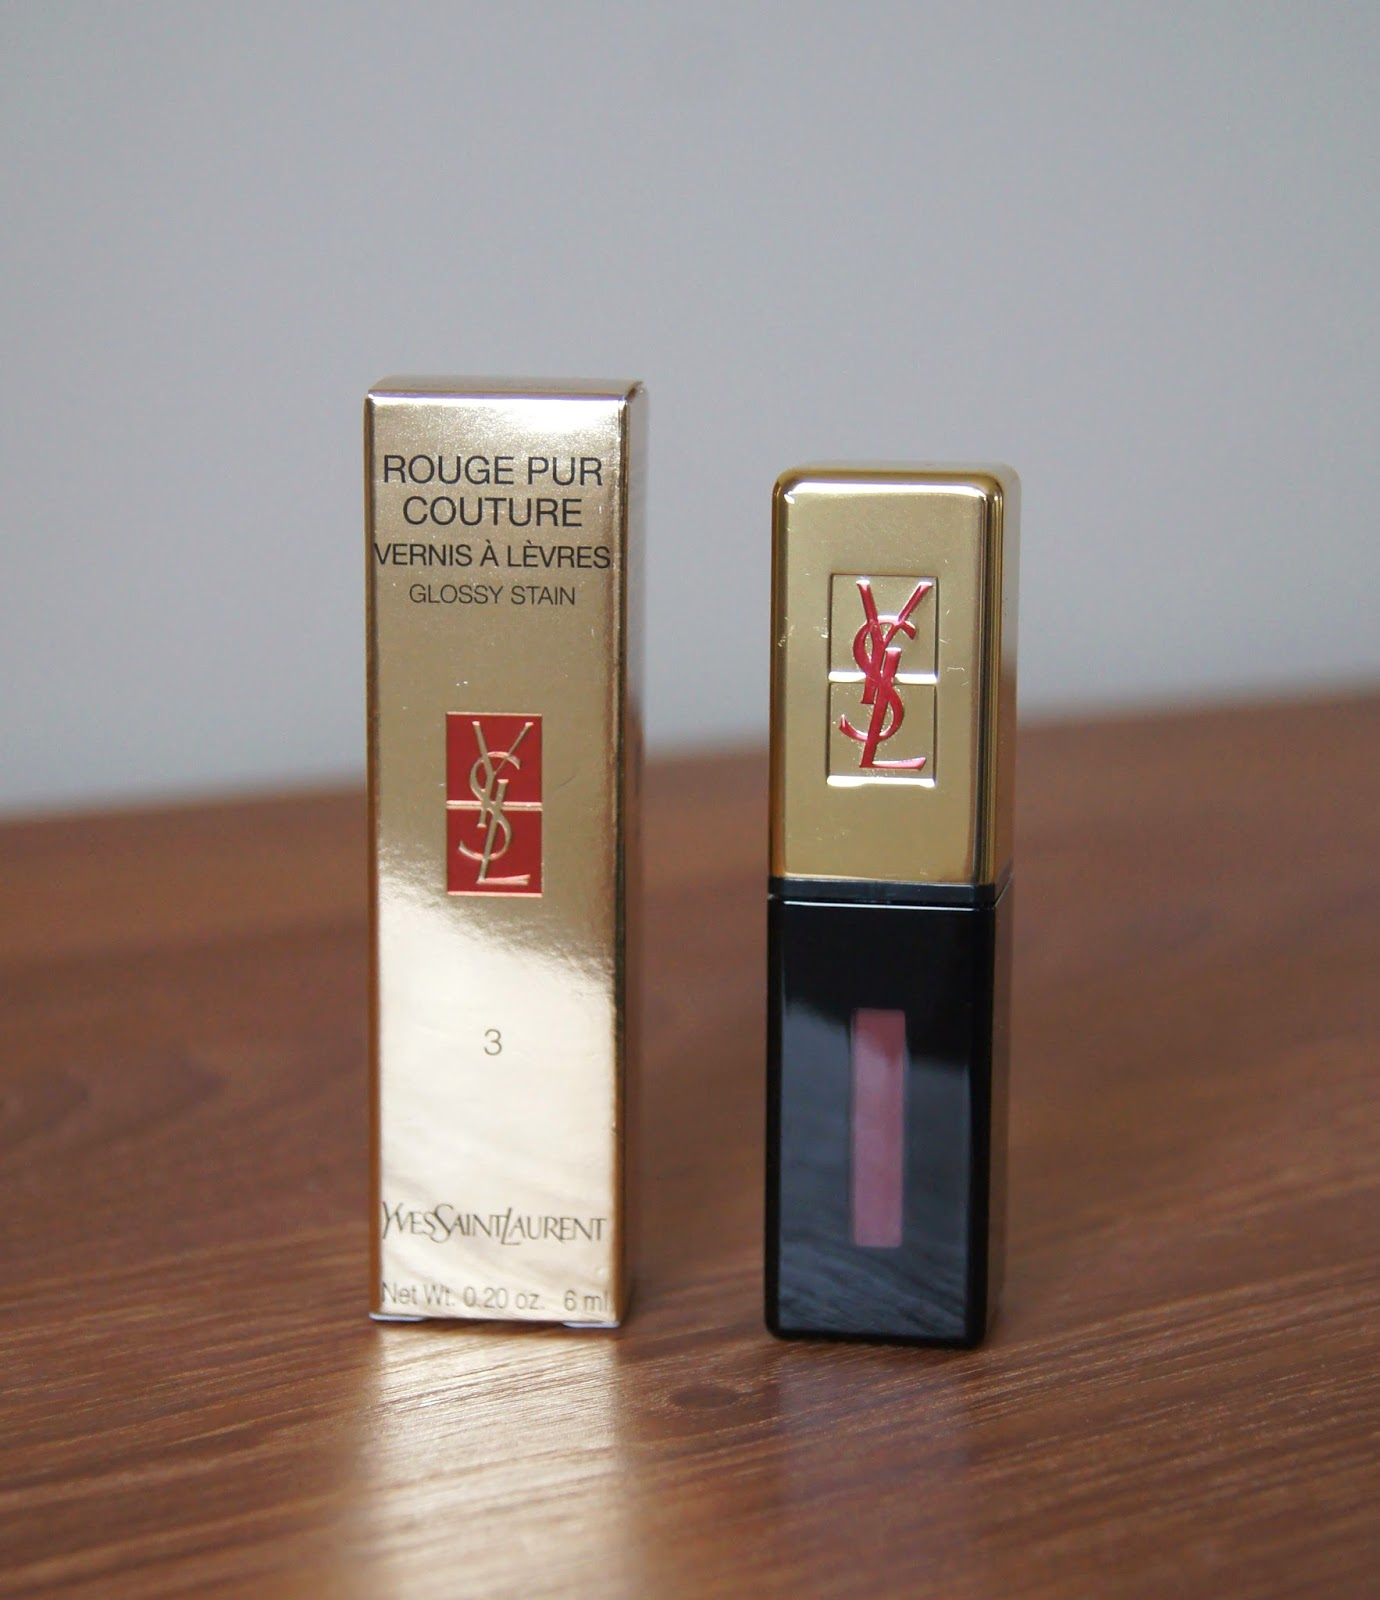 ysl pur couture glossy stain 3 brun cachemire review